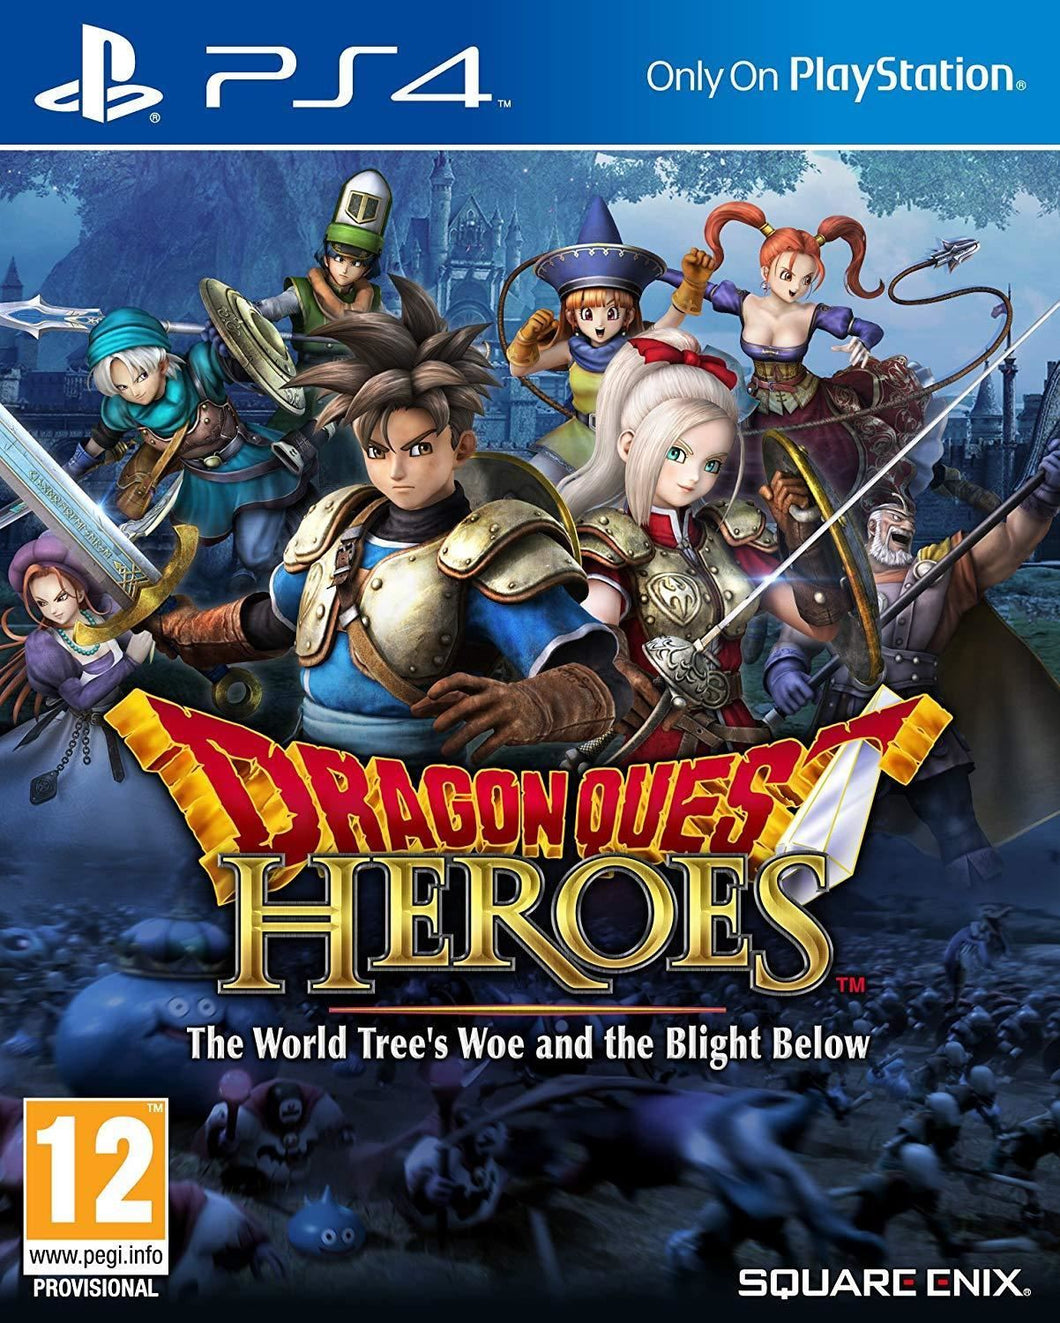 DRAGON QUEST HEROES: The World Tree's Woe